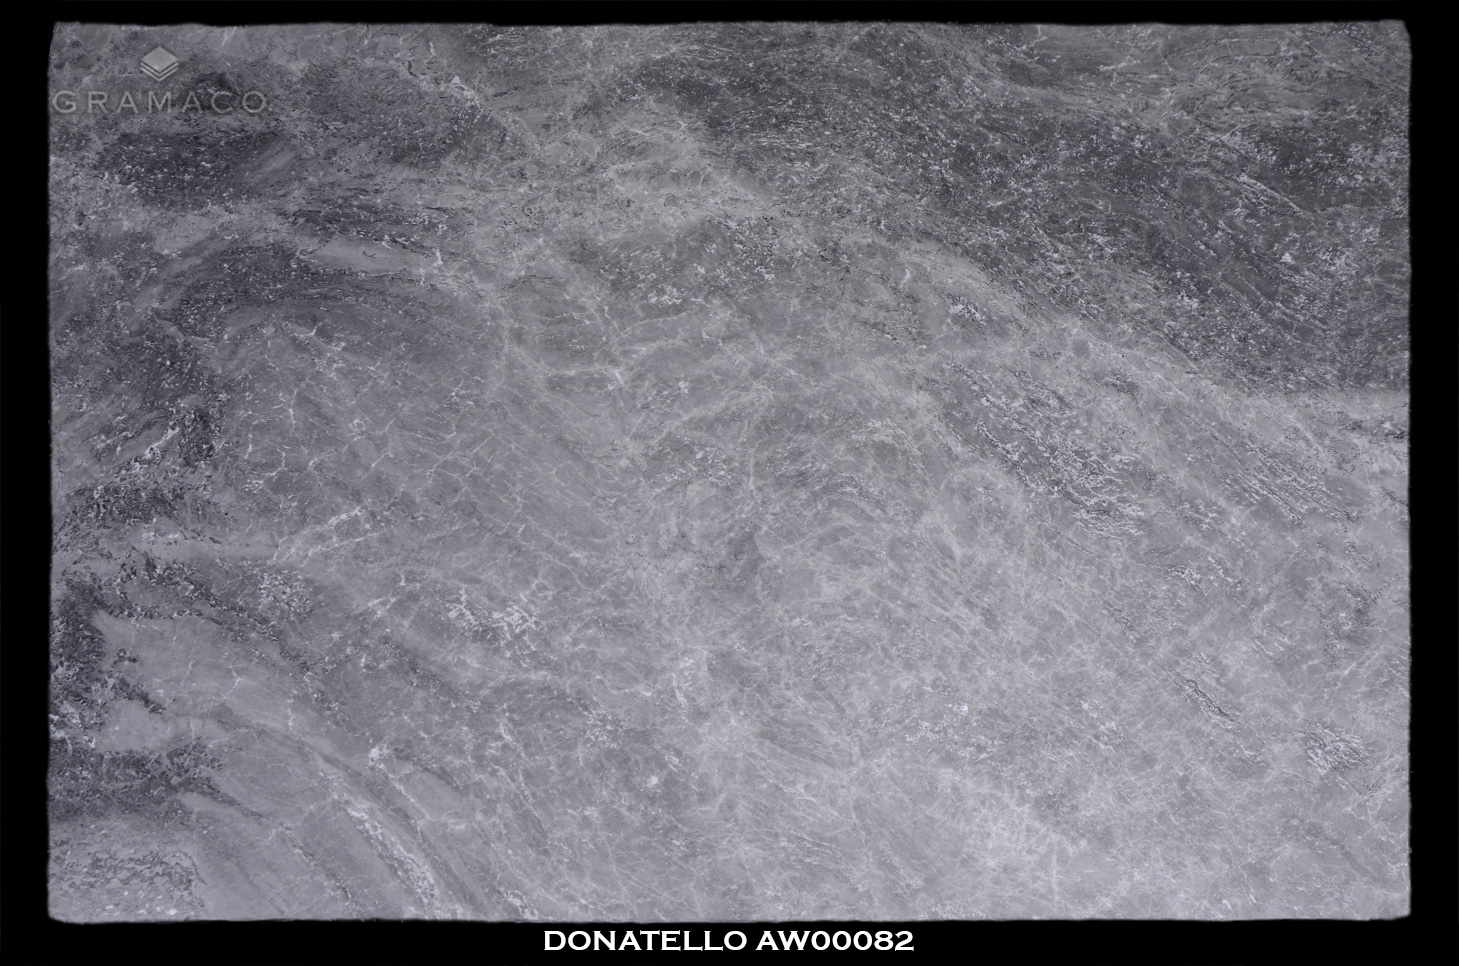 DONATELLO-AW00082-SLAB